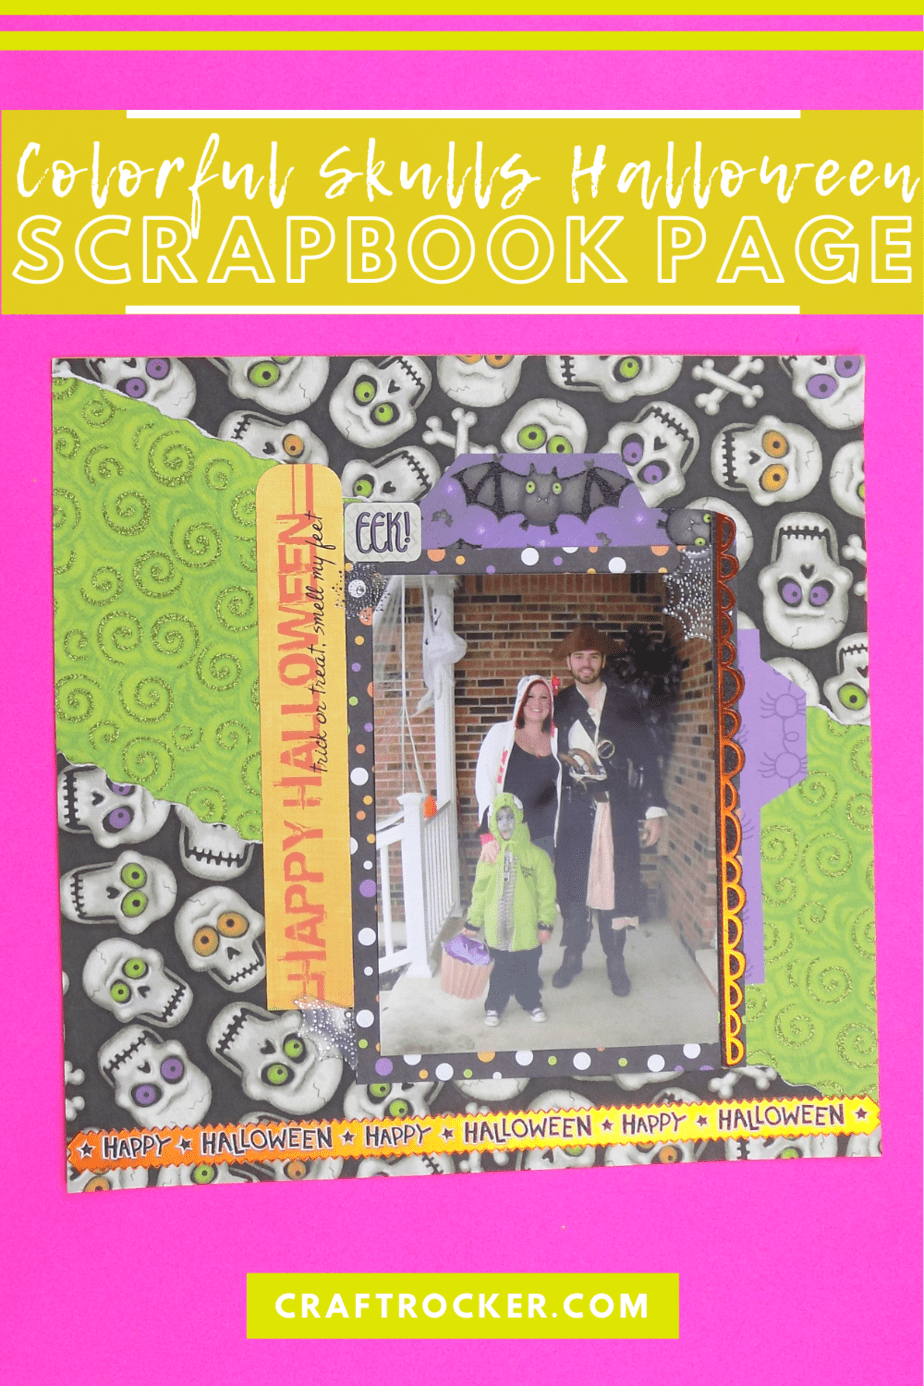 Family Costume Scrapbook Page with text overlay - Colorful Skulls Halloween Scrapbook Page - Craft Rocker